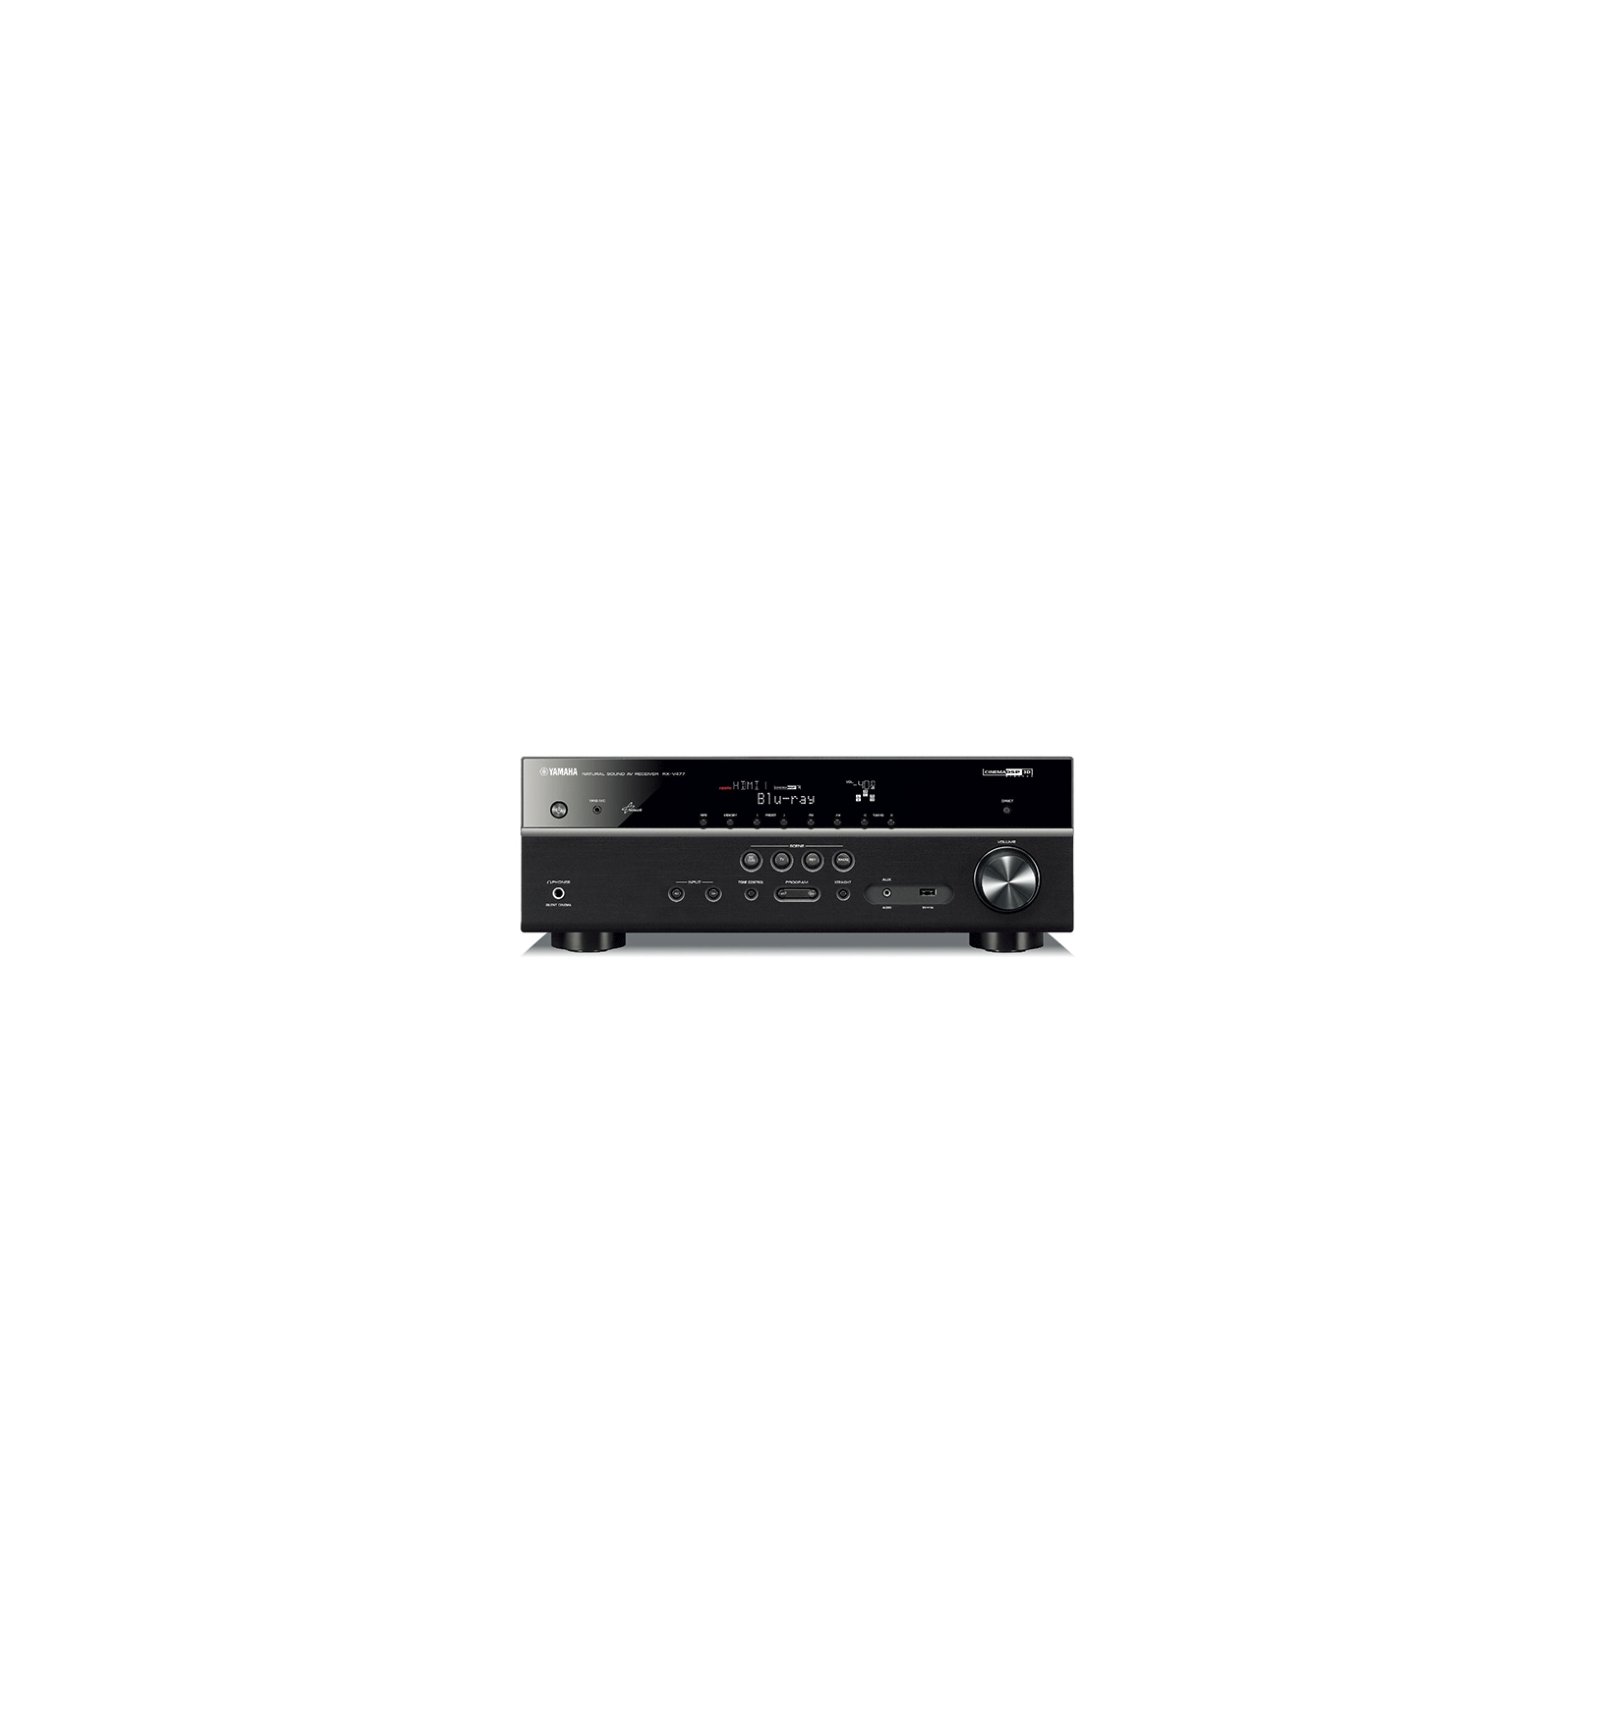 yamaha rx v477 5 1 network av receiver with airplay. Black Bedroom Furniture Sets. Home Design Ideas